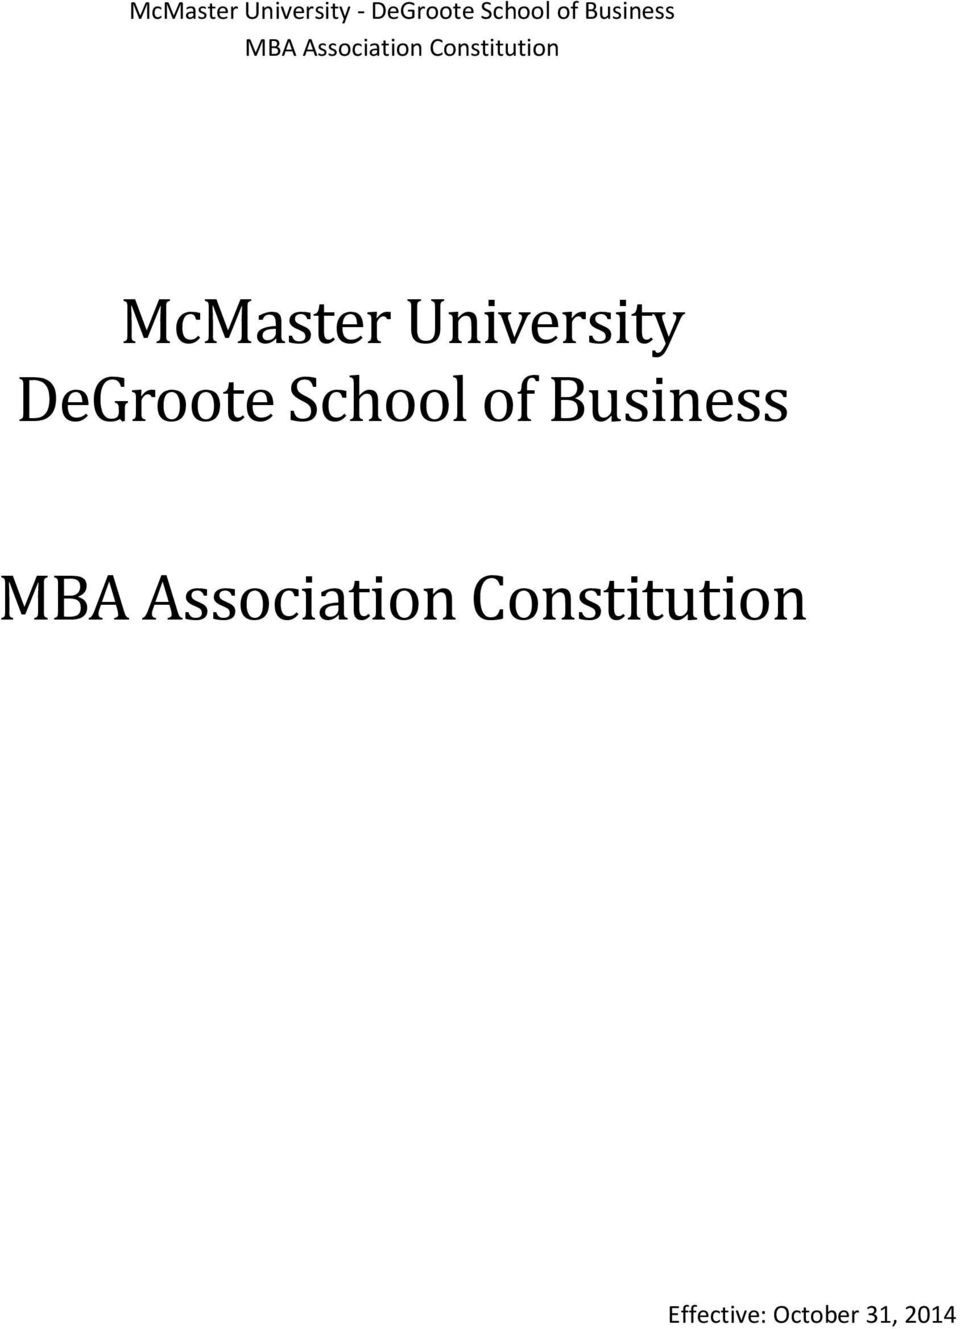 McMaster University DeGroote School of